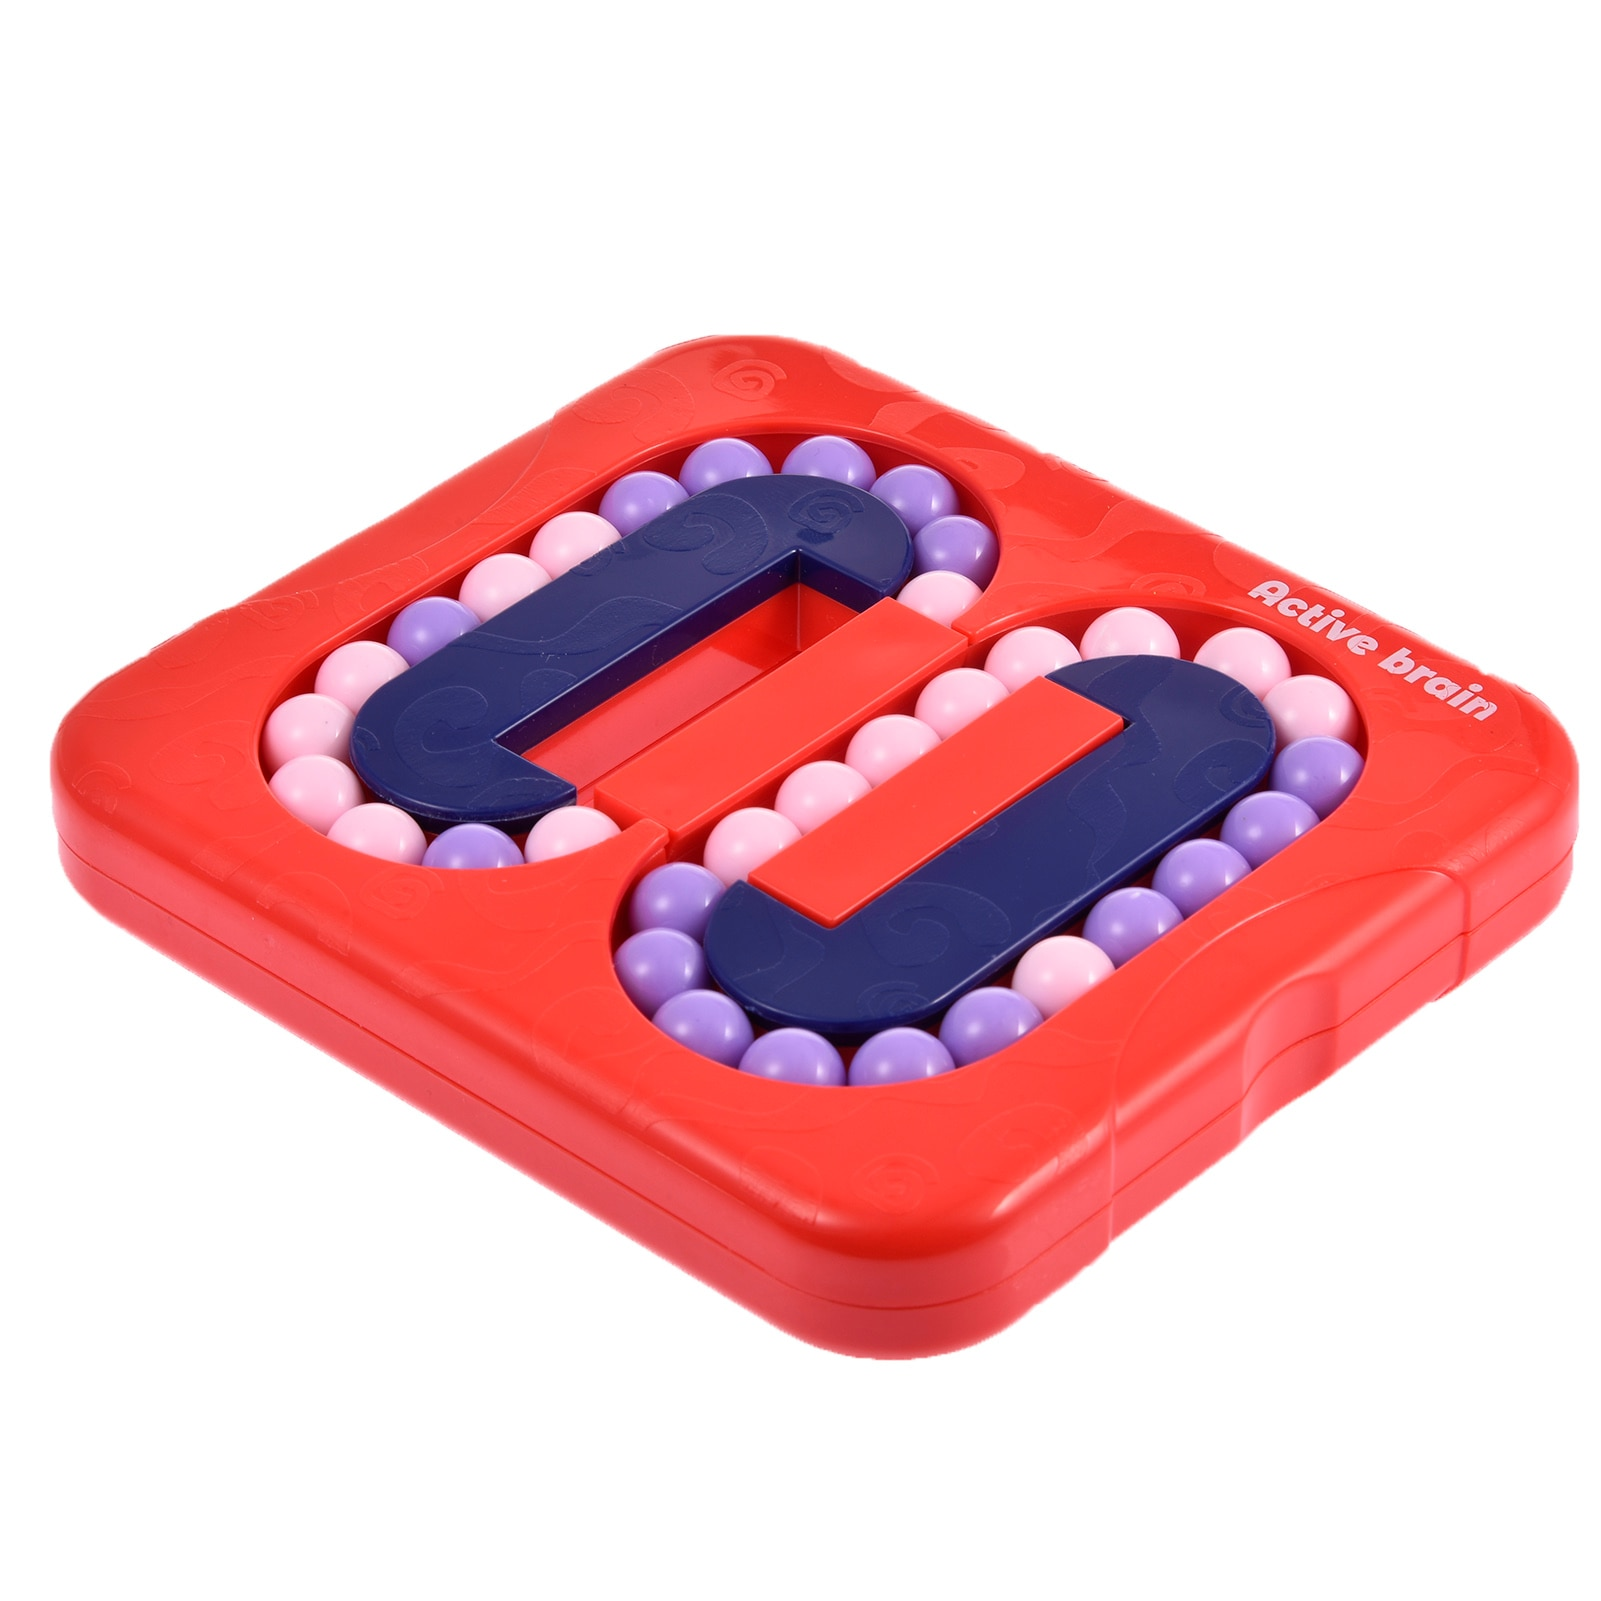 A Flat Bead Maze Toy Rotating Funny Early Educational Toy Rotating Interesting Kids Toys Magic Bean For Kid rotating kaleidoscope rotation fancy world baby toy kids autism kid interesting toy for children gift cherryb